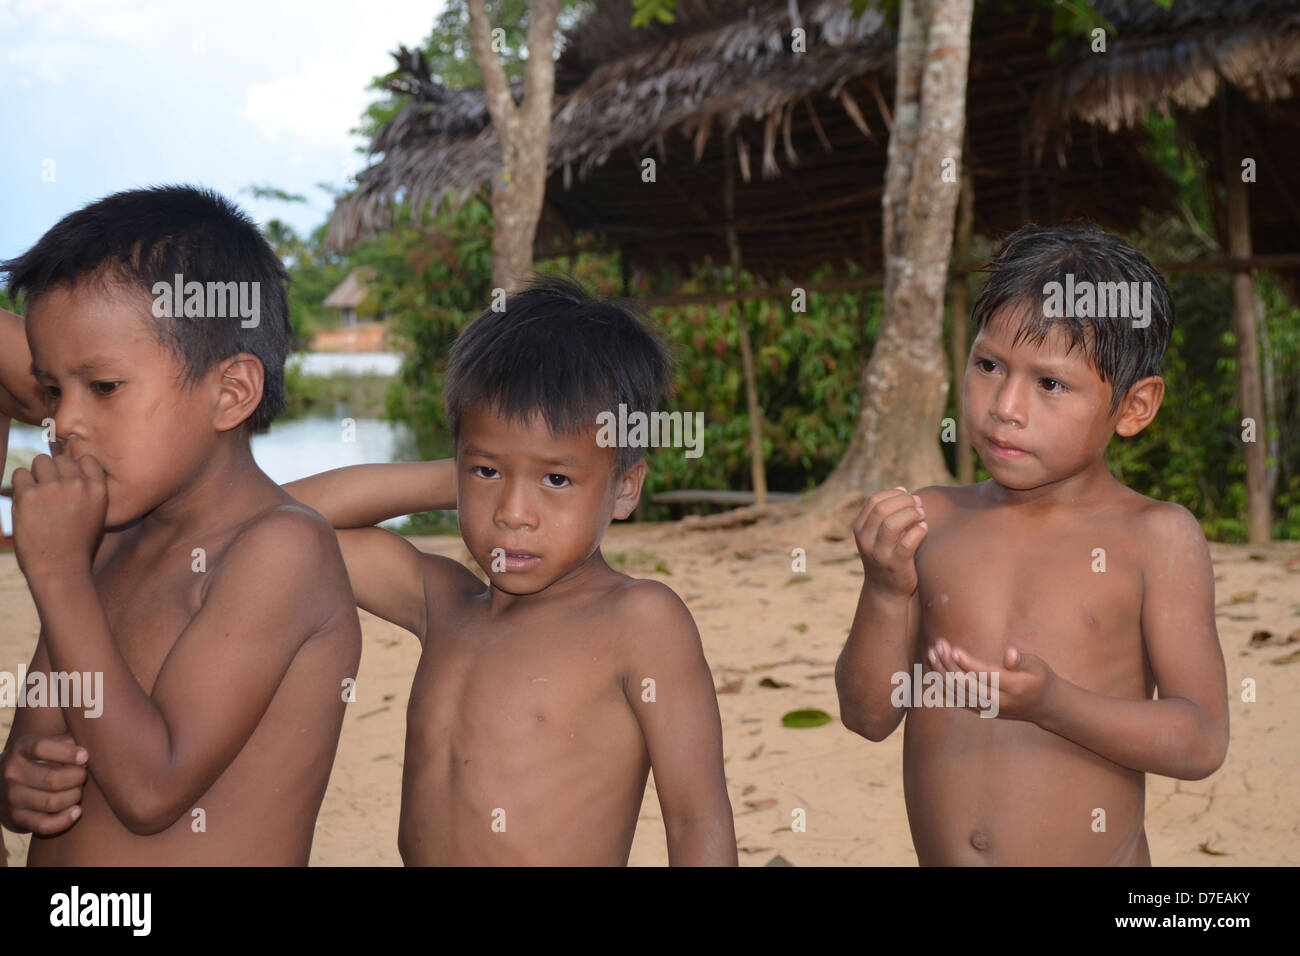 Three Native Yagua Boys Tribe In Their Village Near Iquitos The Peruvian Amazon